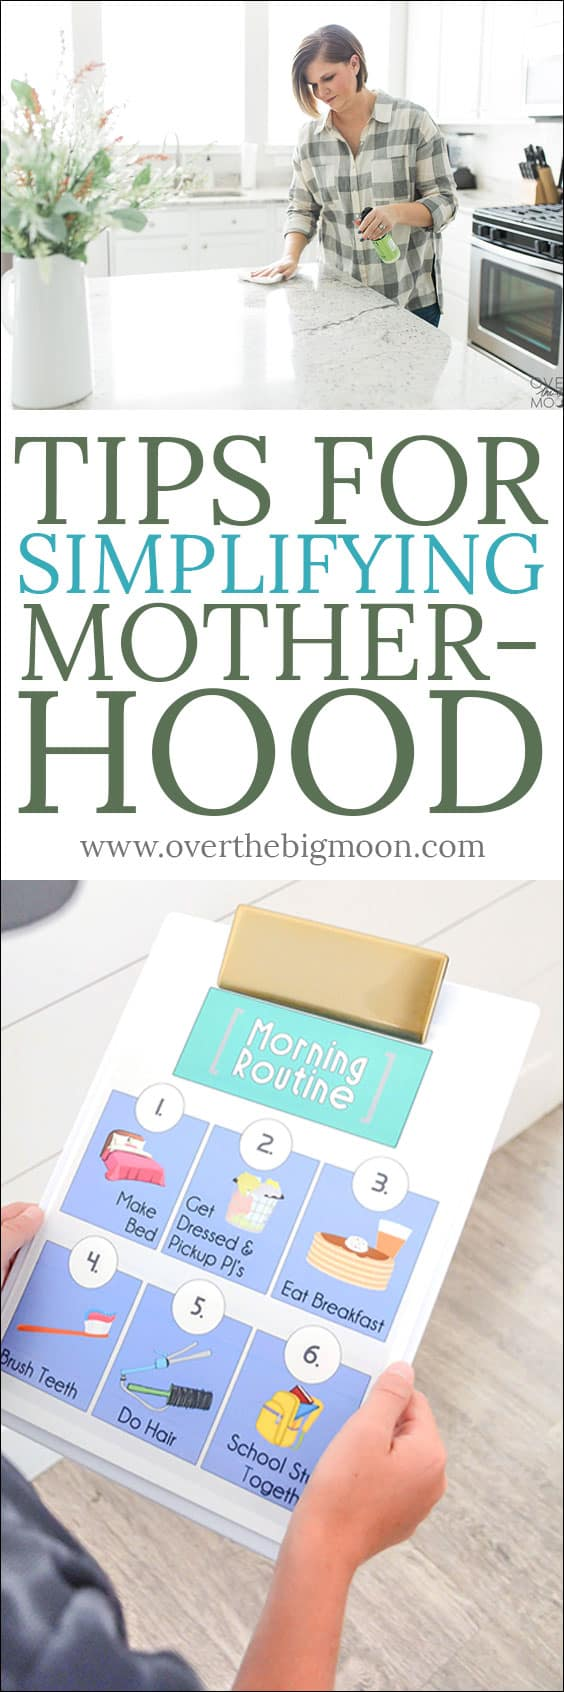 This mommy job is HARD! Check out these tips for helping simplify motherhood and taking care of your home! From overthebigmoon.com!